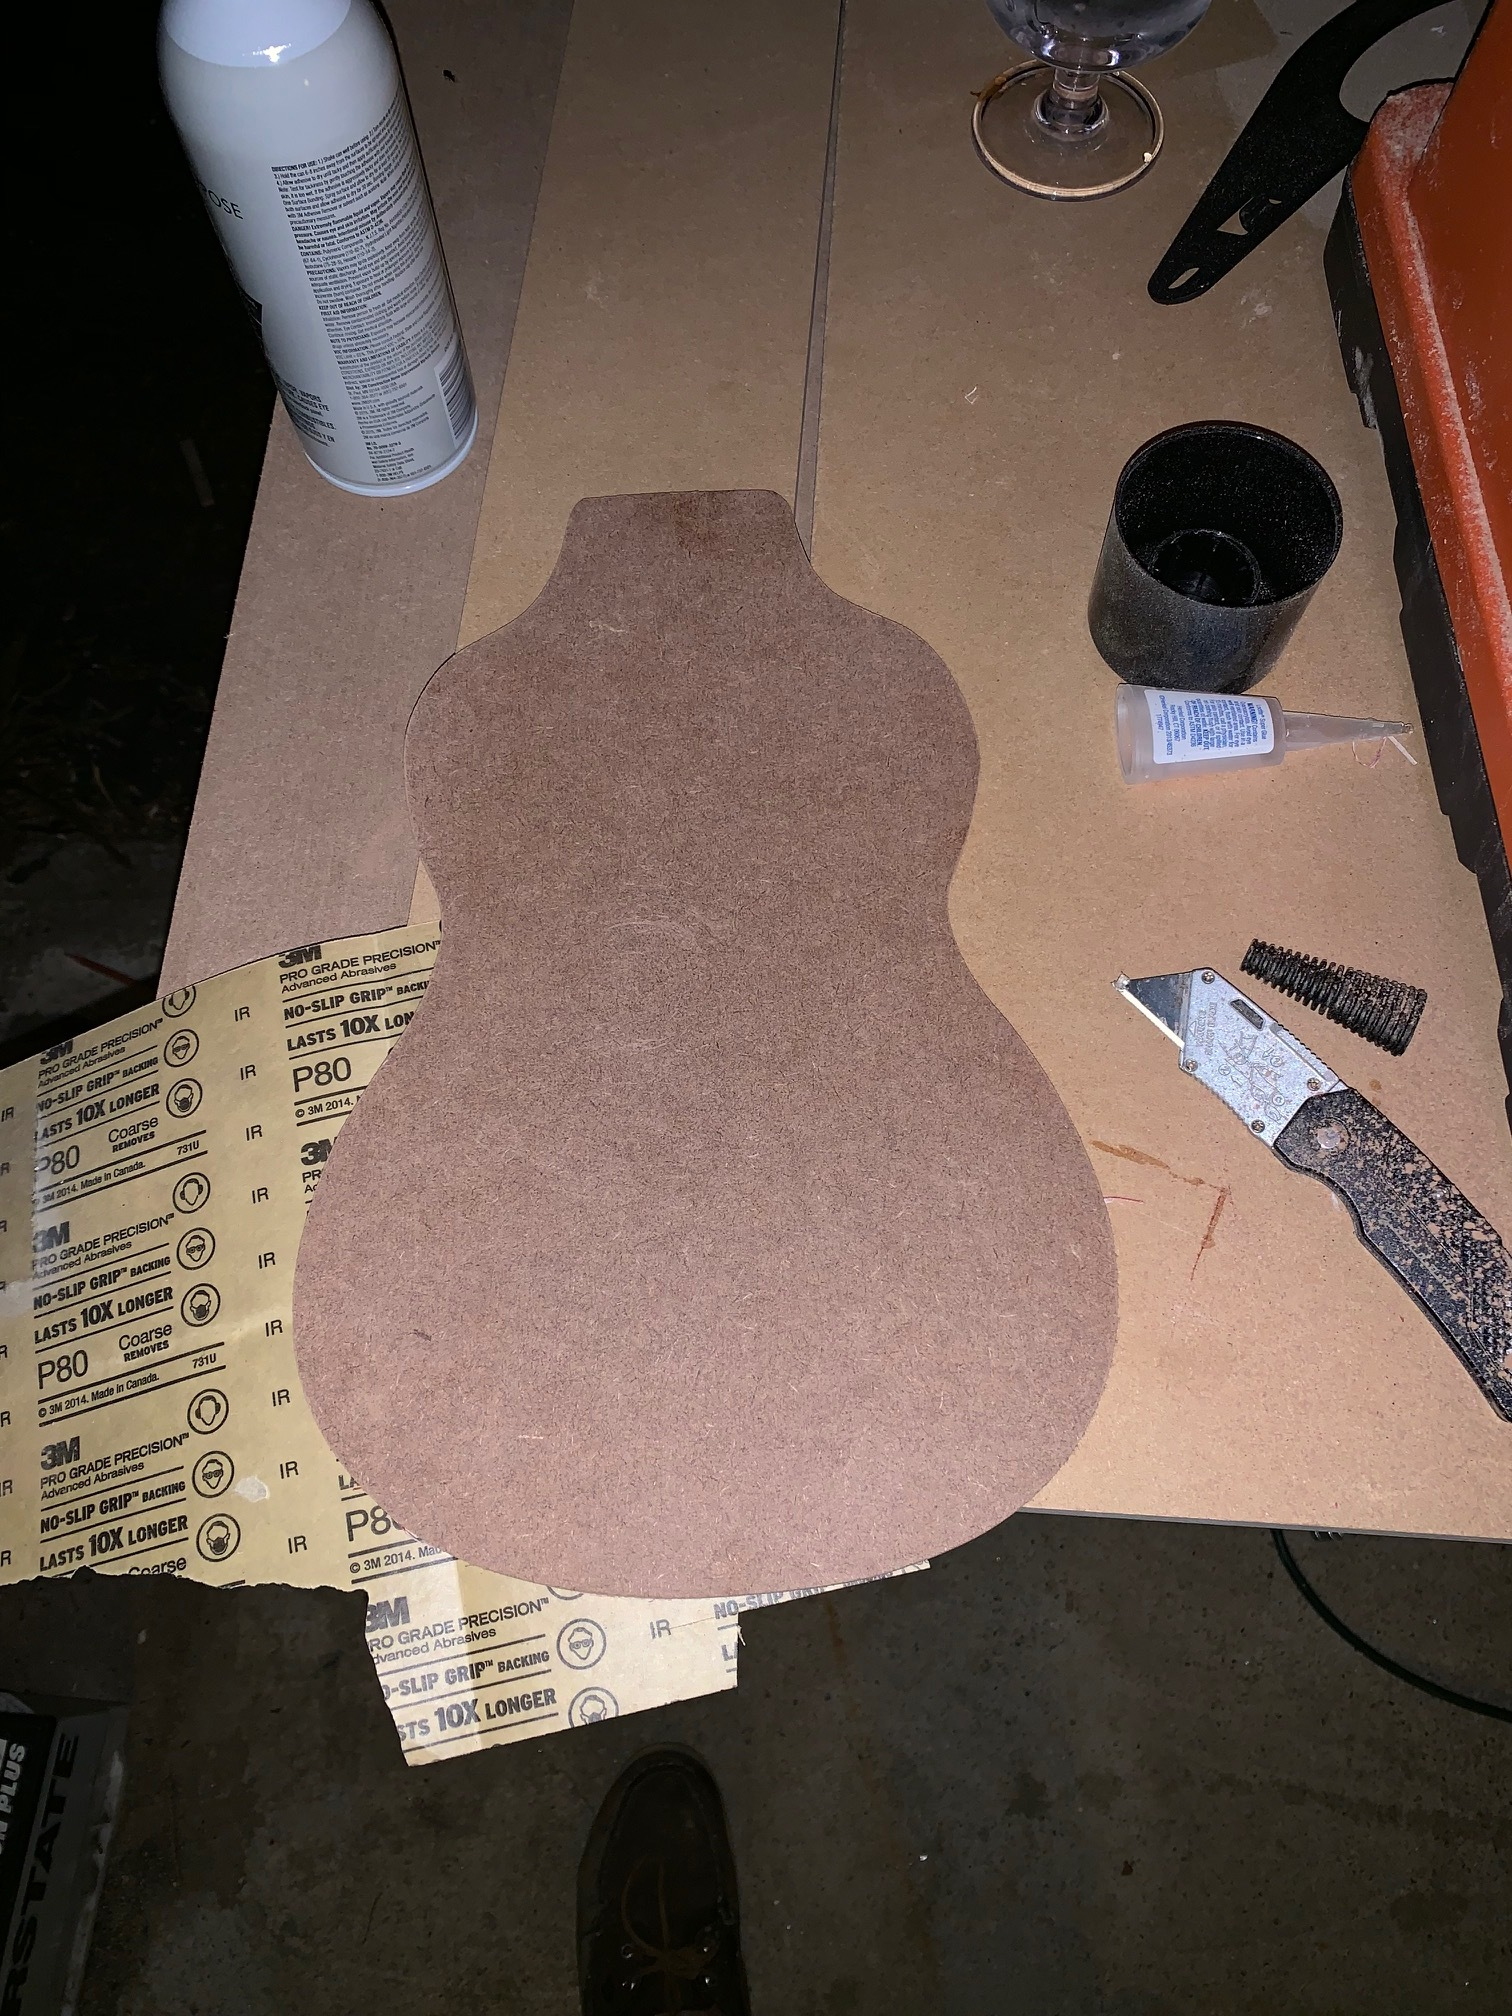 The final body template.